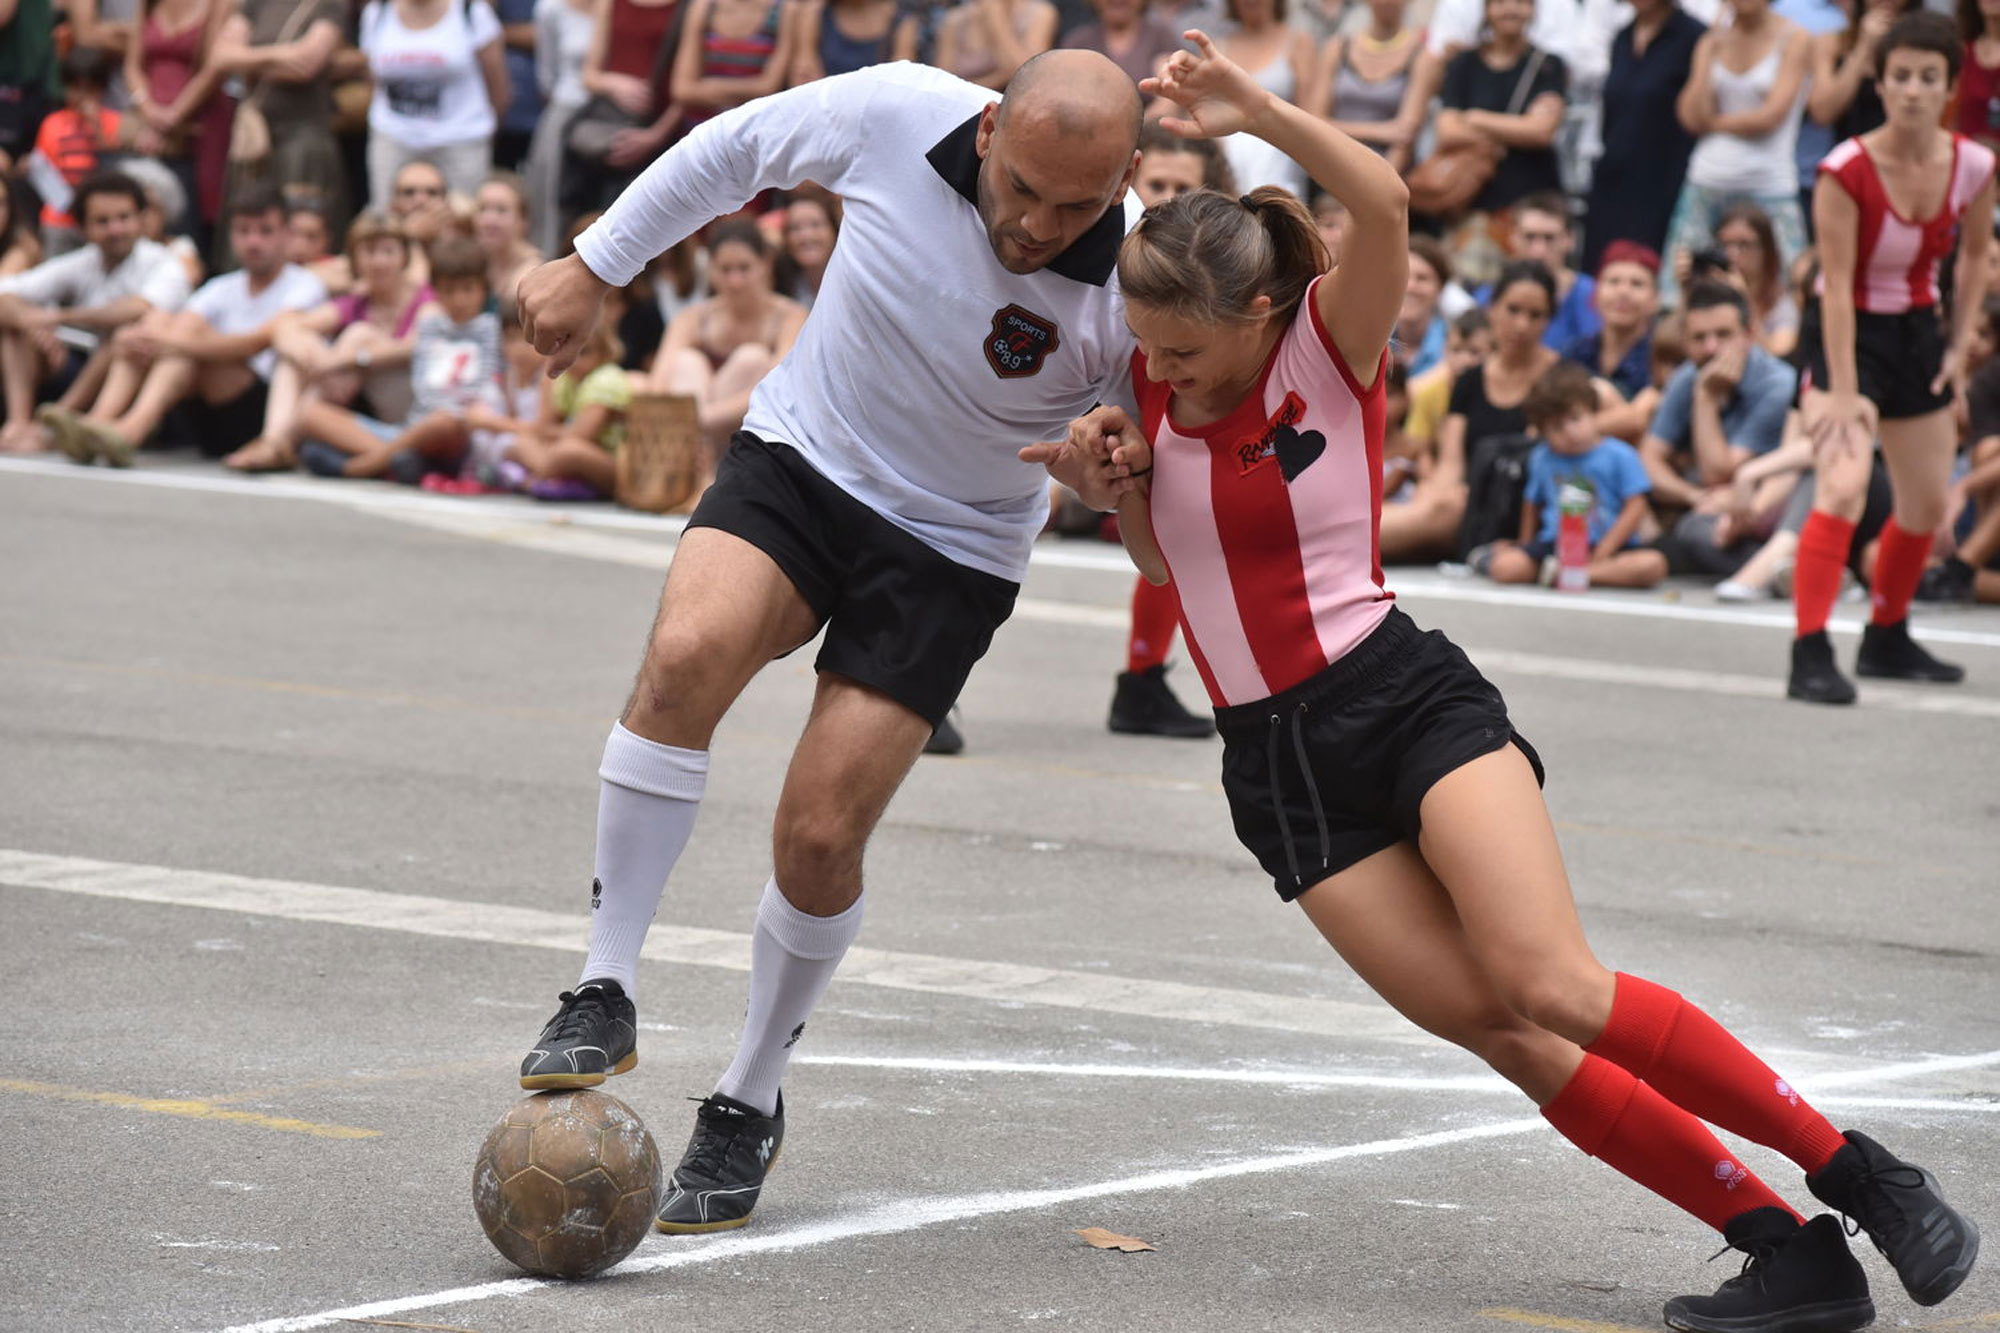 Footballer and dancer in Vero Cendoya's La Partida